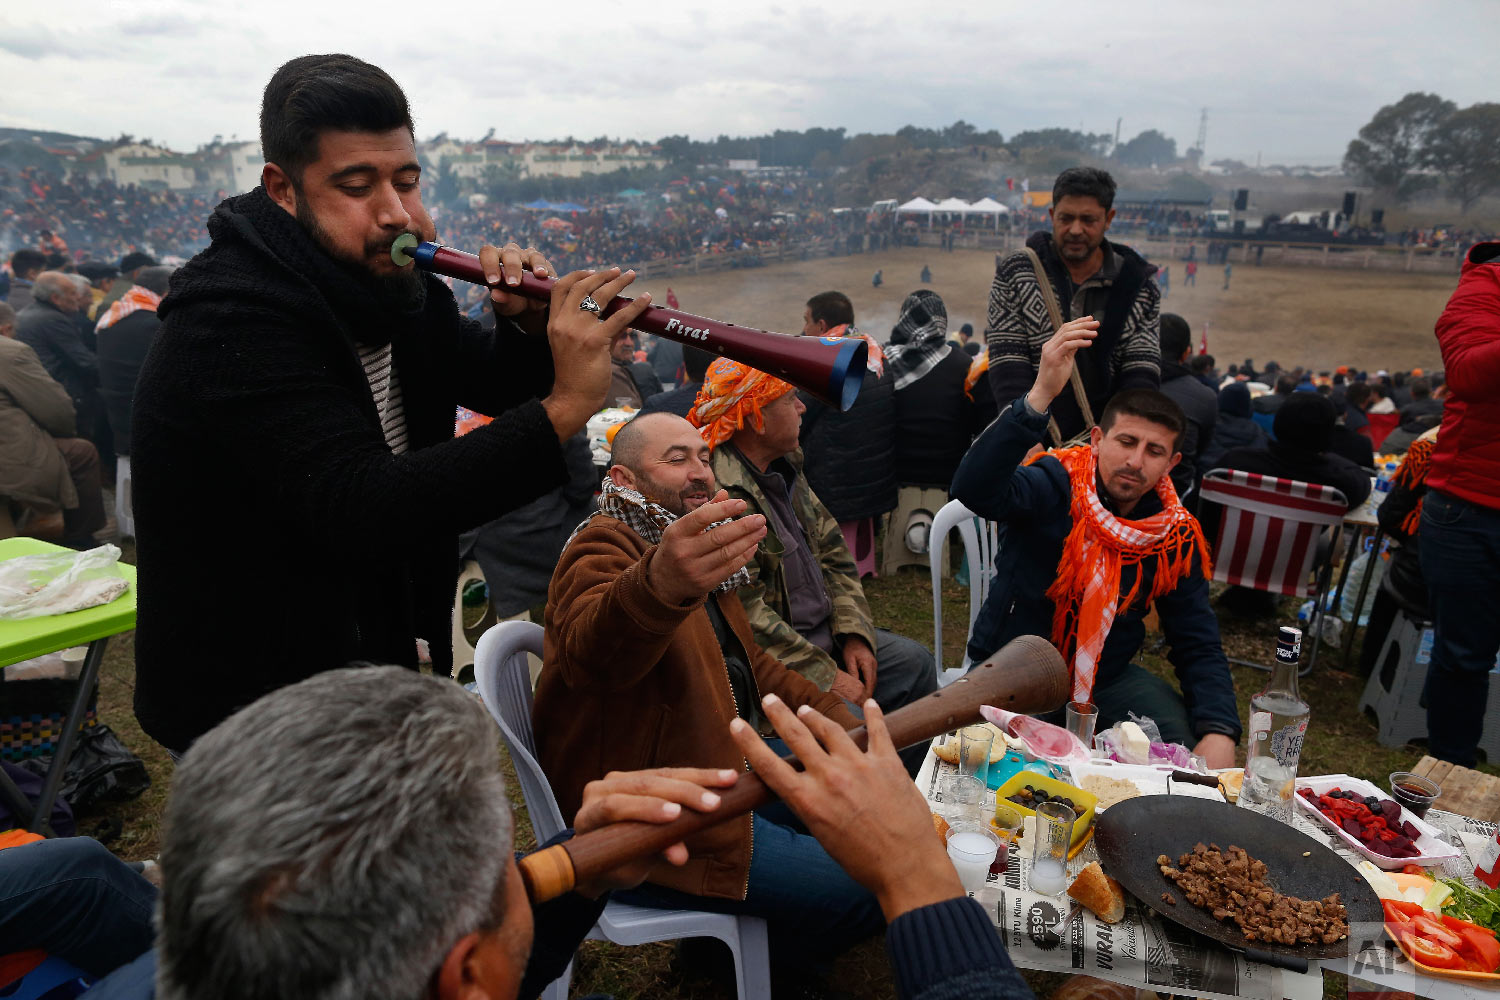 Musicians perform traditional folk songs, as spectators enjoy on a hill overlooking an arena where camels wrestle during Turkey's largest camel wrestling festival in the Aegean town of Selcuk, Turkey, Sunday, Jan. 20, 2019.  (AP Photo/Lefteris Pitarakis)